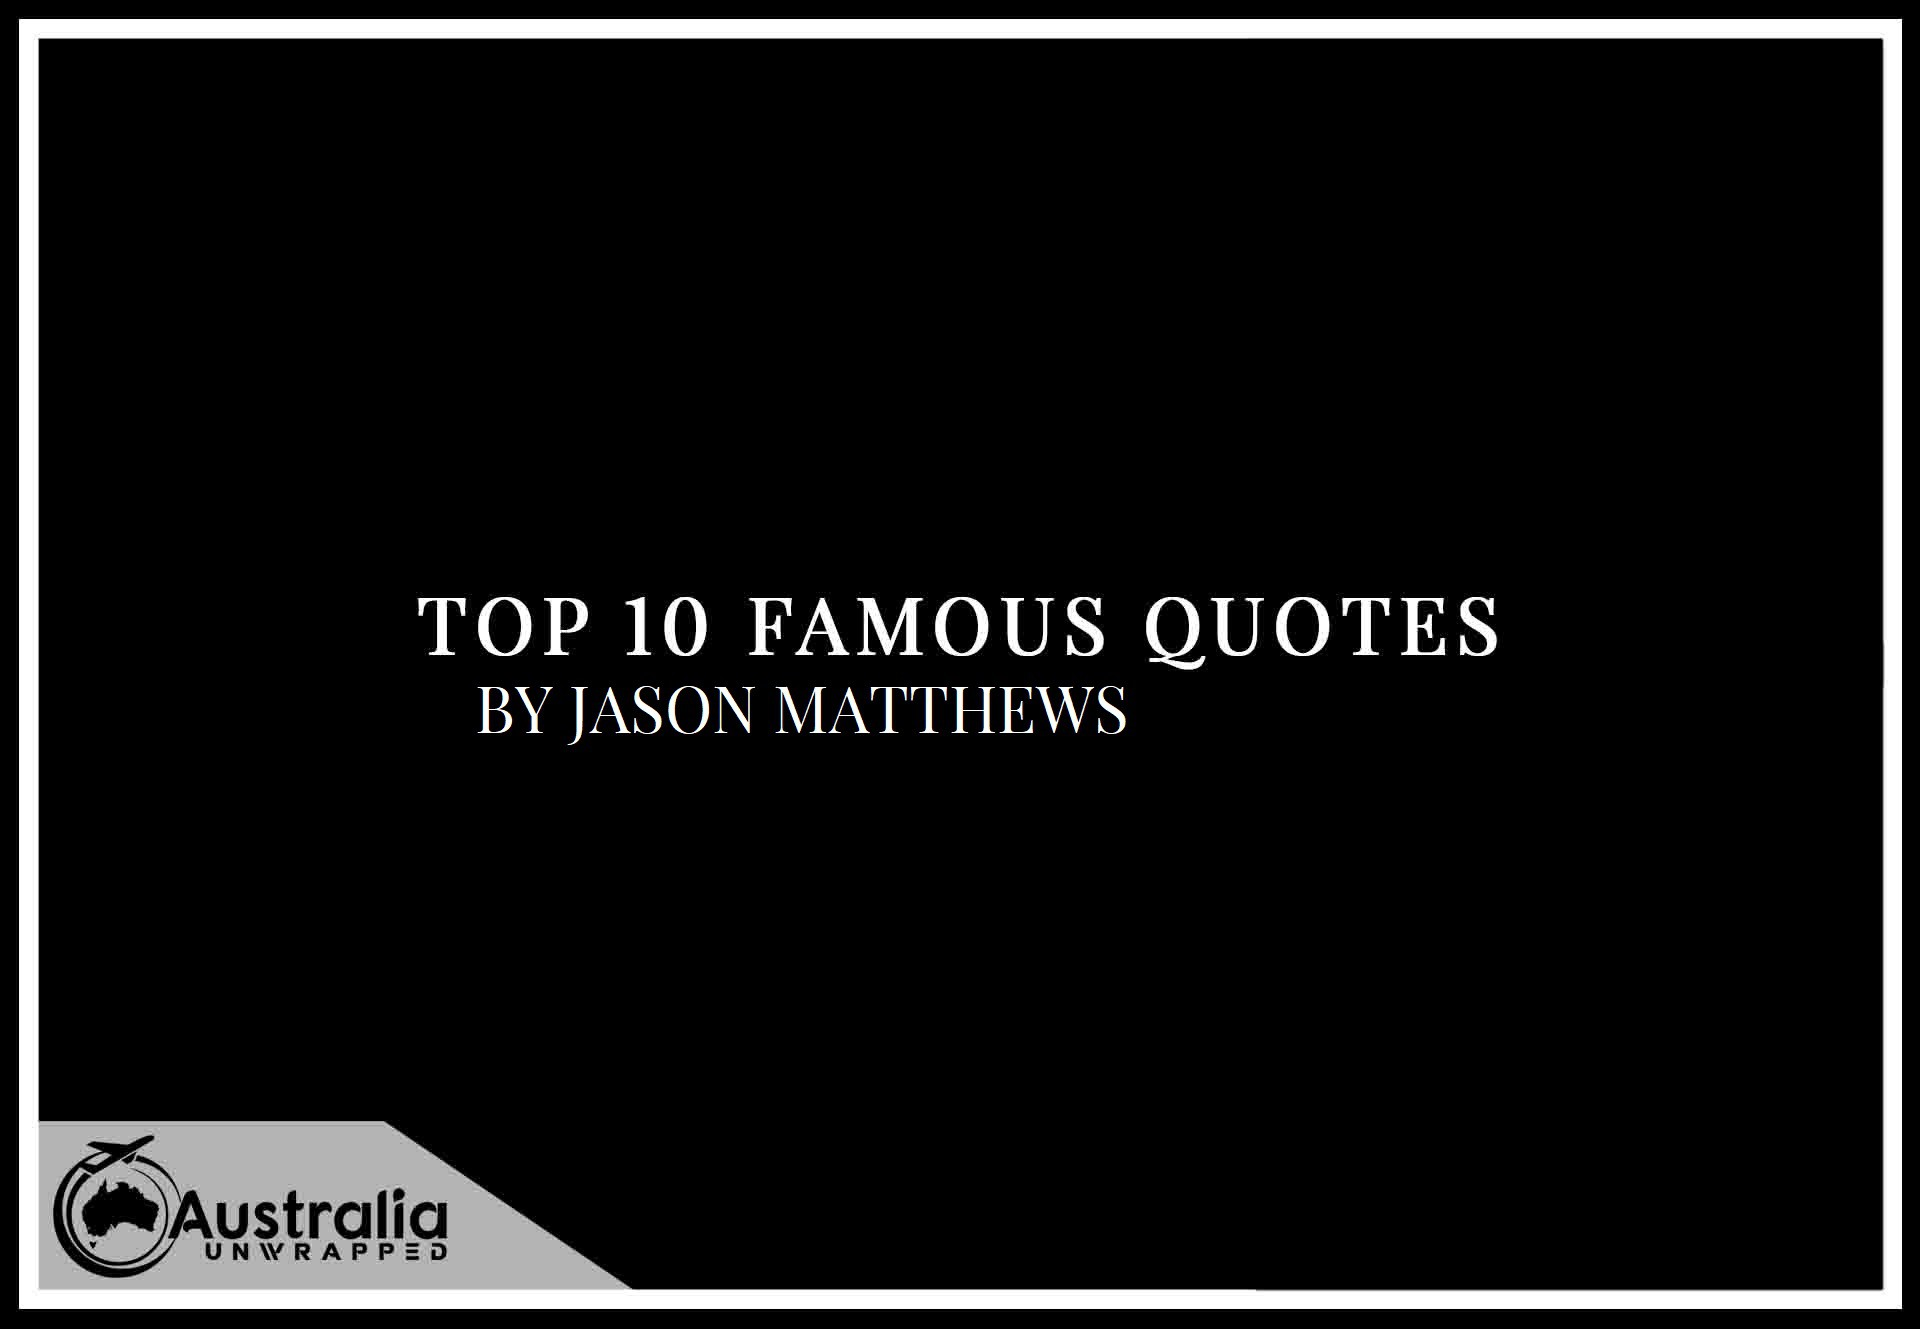 Top 10 Famous Quotes by Author Jason Matthews